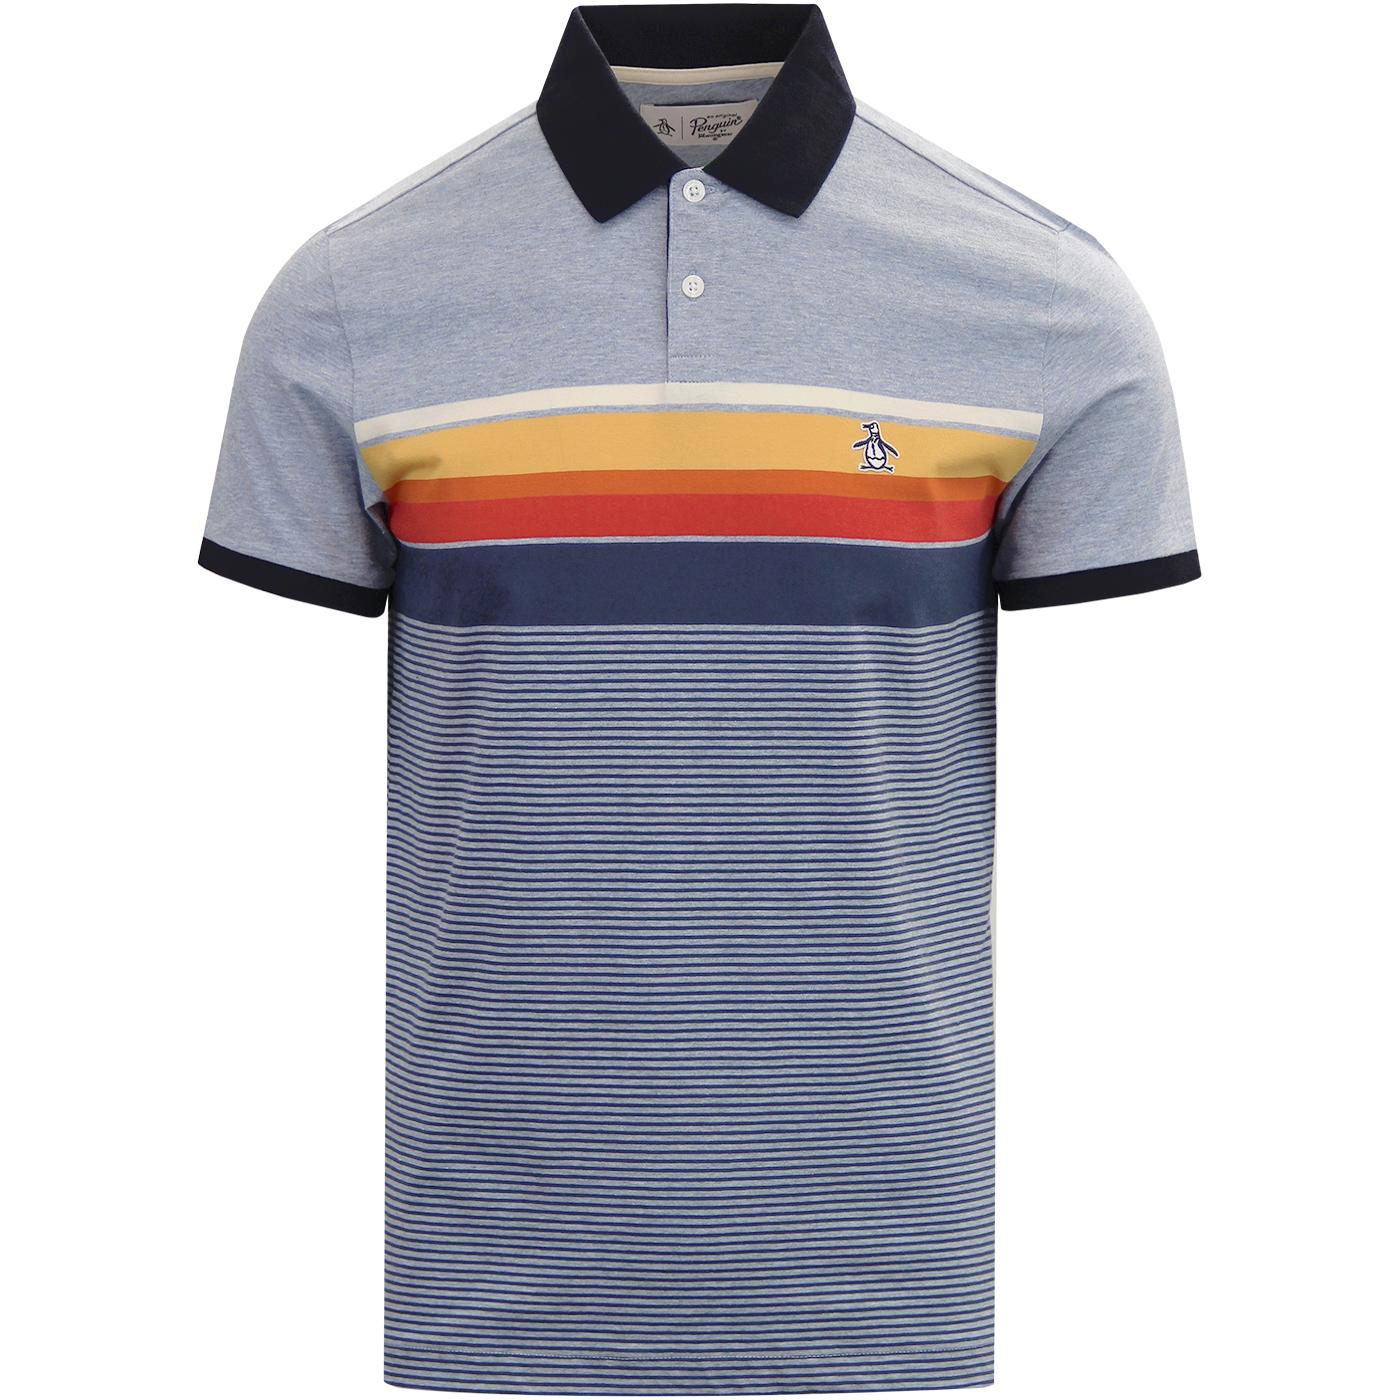 ORIGINAL PENGUIN Mod Engineered Stripe Jersey Polo